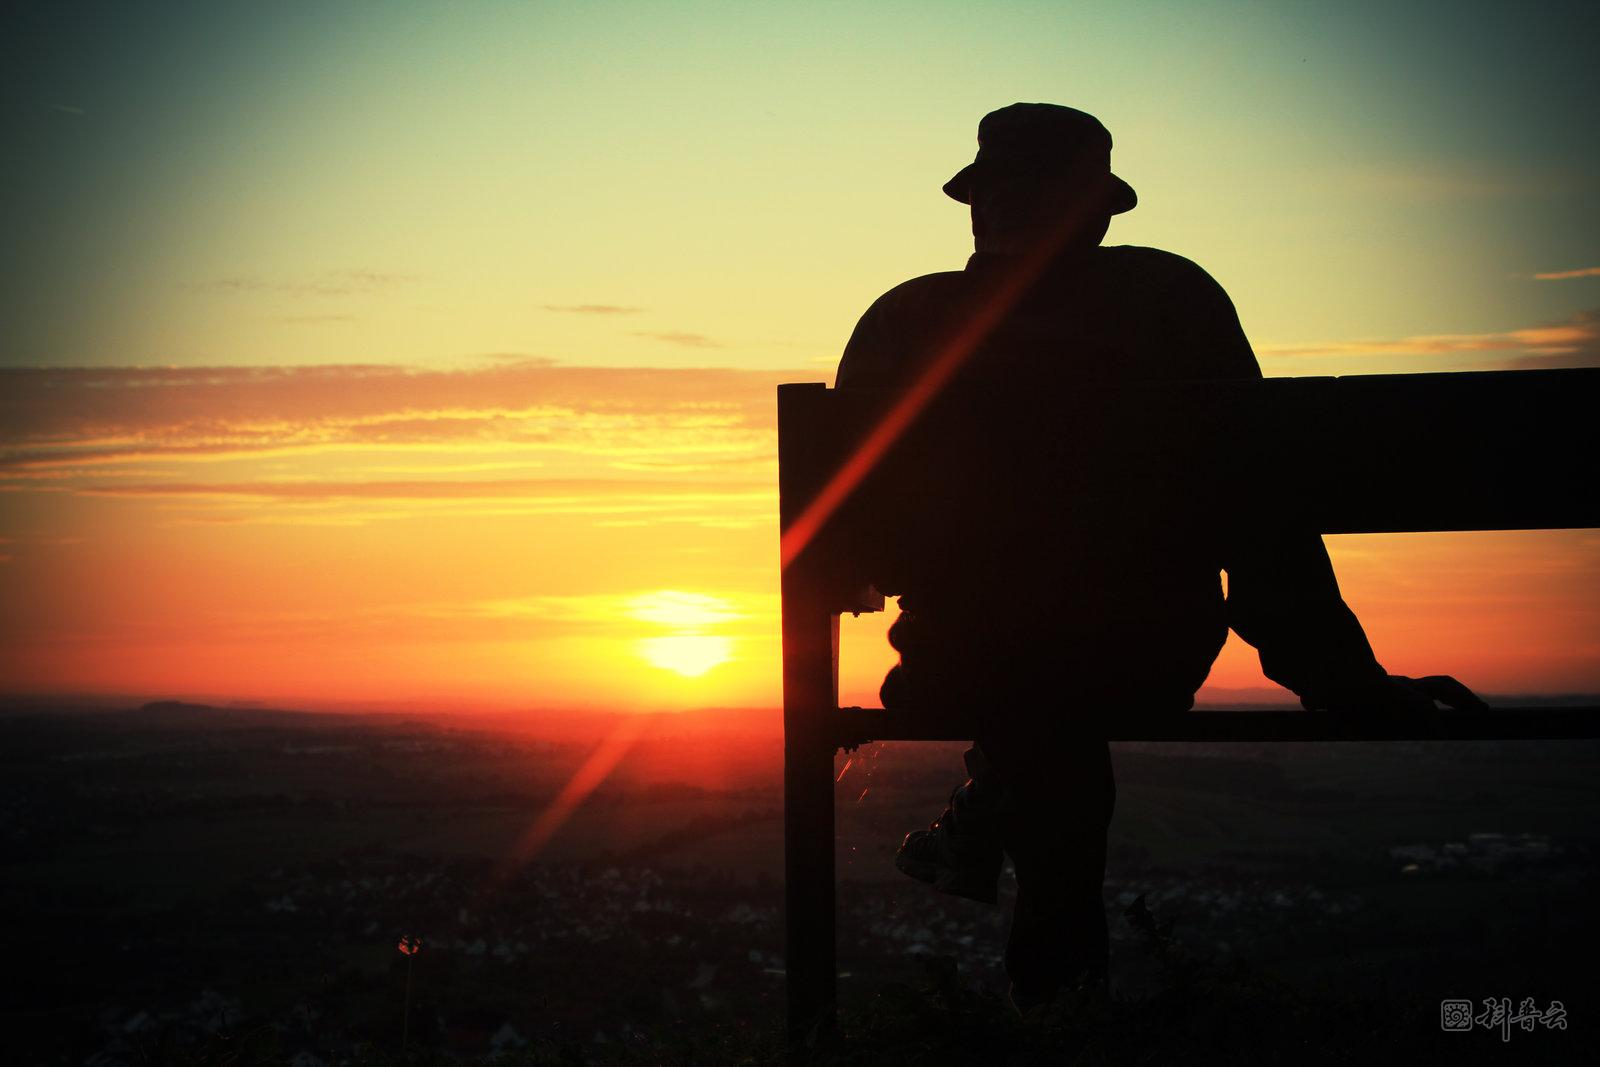 old_man_sunset_by_thelifeinfocus-d5f5g8t.jpg